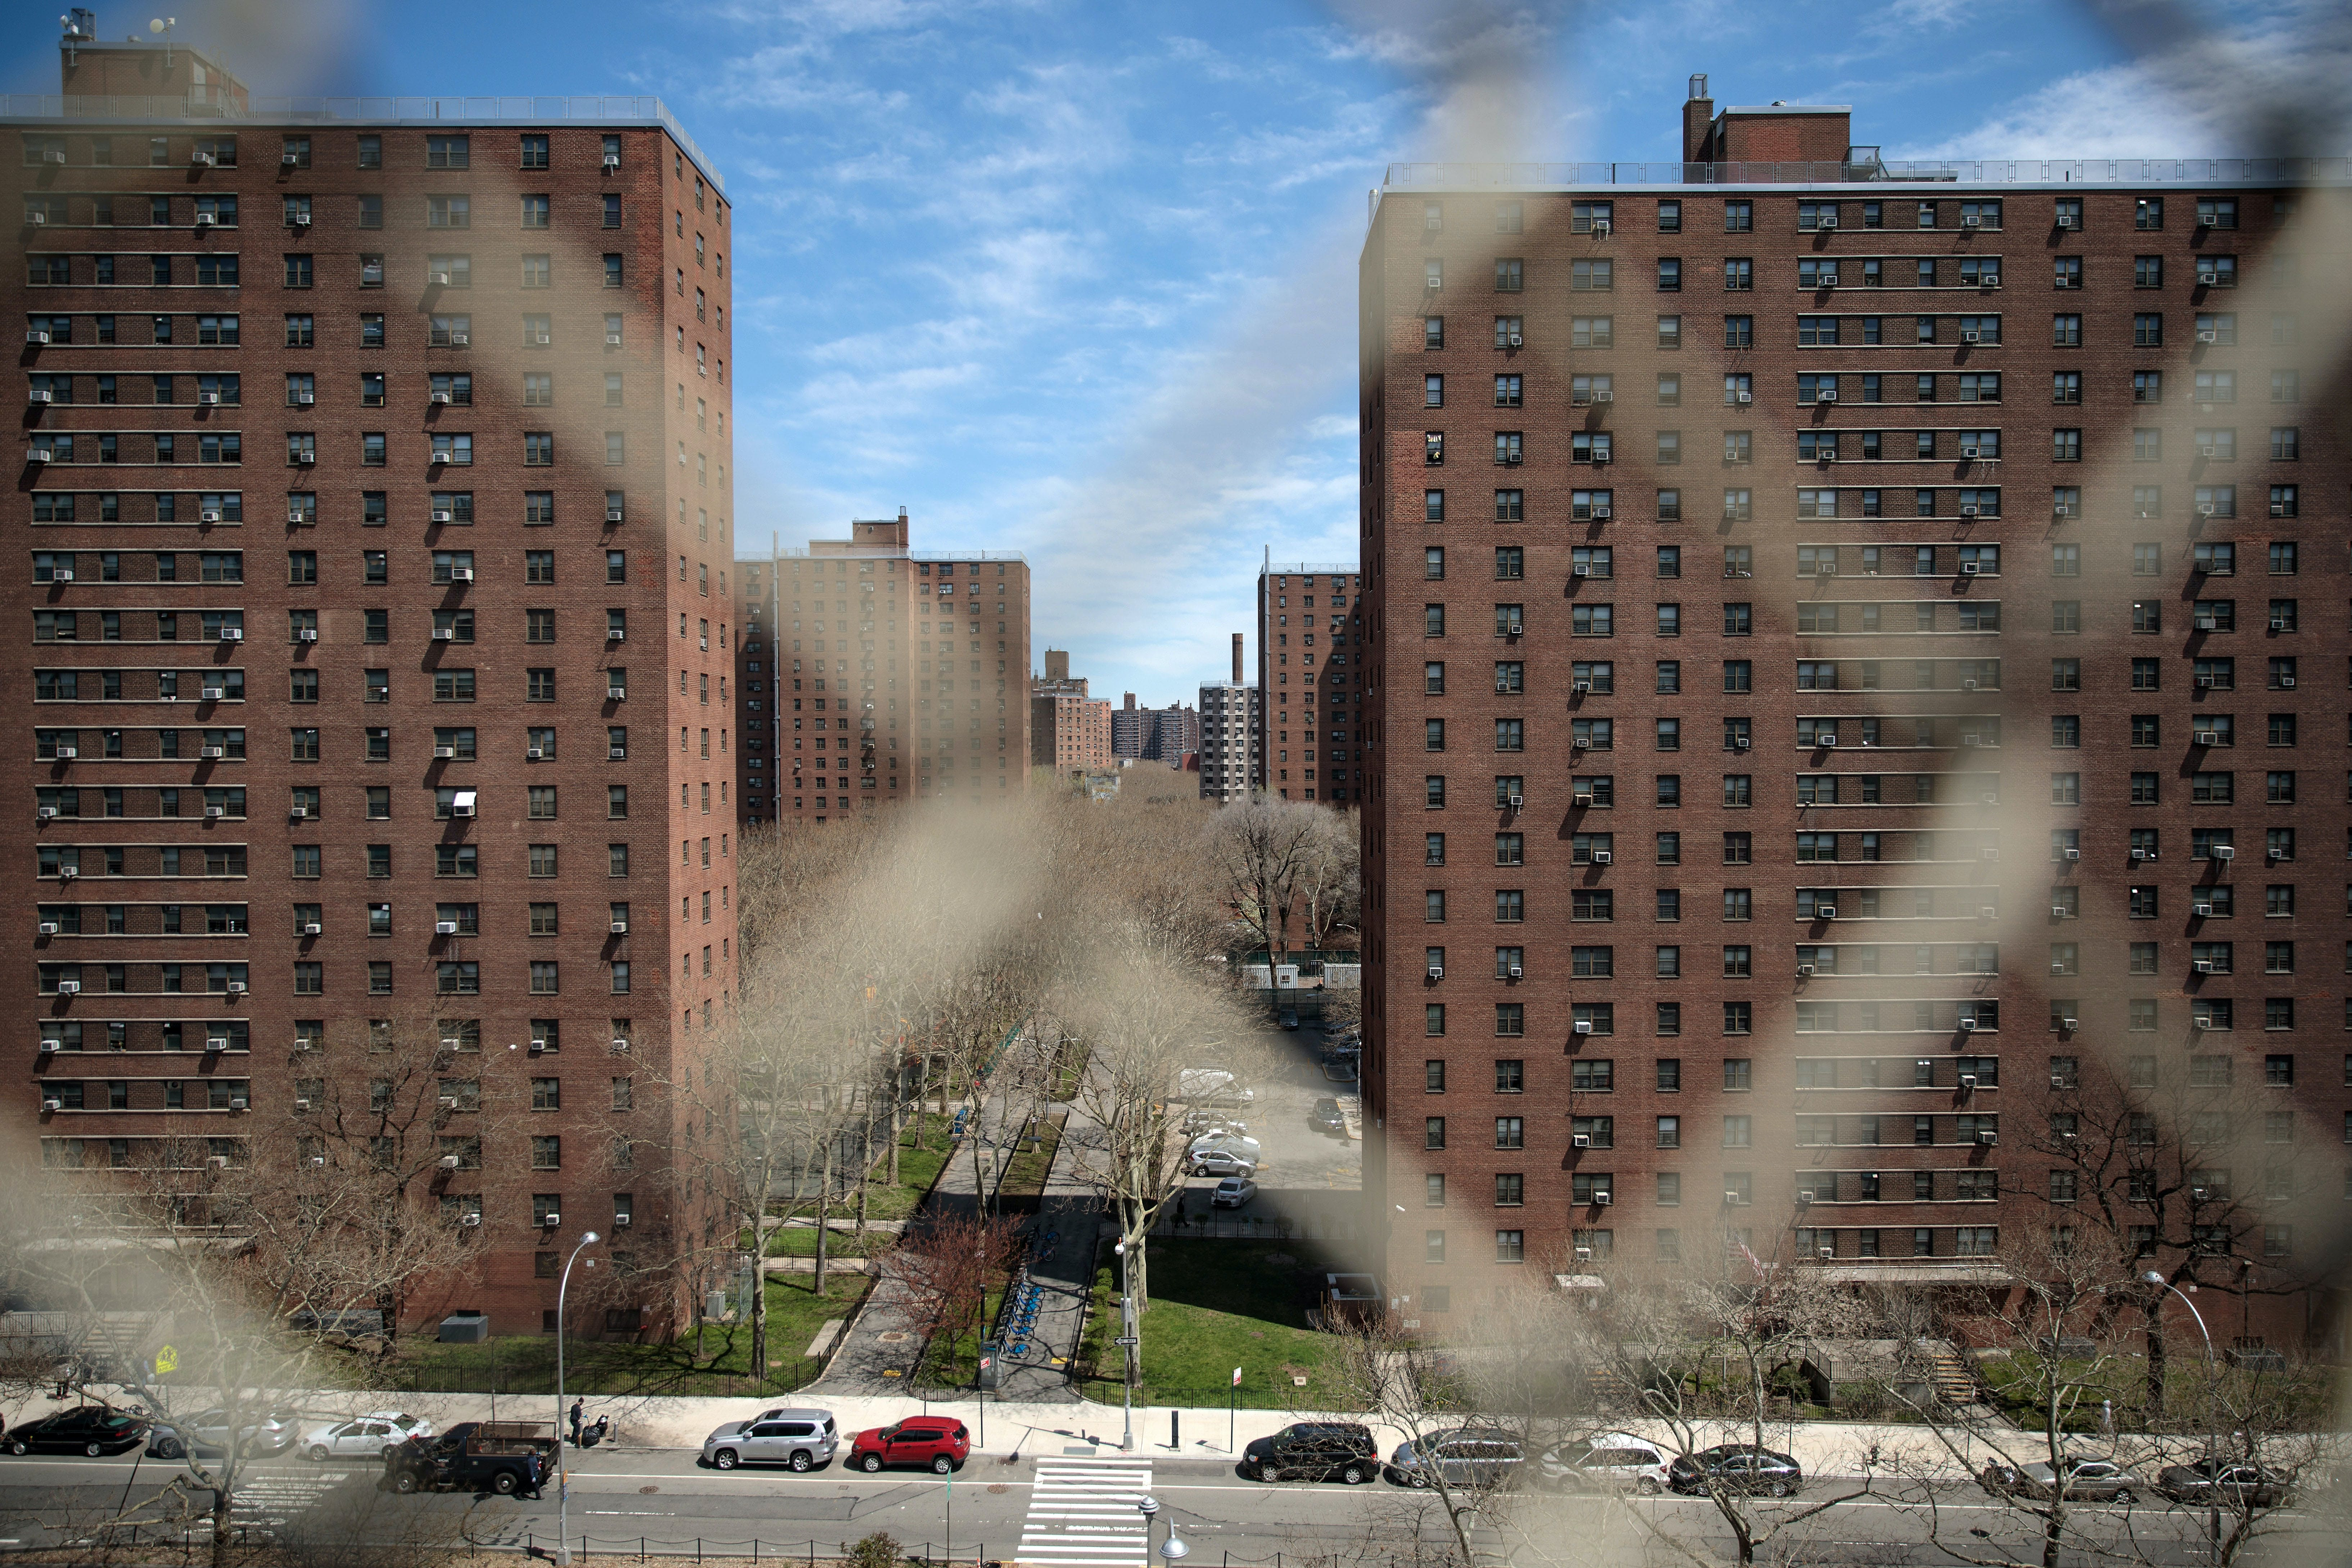 NEW YORK, NY - APRIL 26: The Henry Rutgers Houses, a public housing development built and maintained by the New York City Housing Authority (NYCHA), stand in in the Lower East Side of Manhattan, April 26, 2018 in New York City. Housing and Urban Development Secretary Ben Carson has proposed changes to federal housing subsidies, potentially tripling rent for some households and making it easier for housing authorities to impose work requirements. Under the proposed plan, millions of families living in federally subsidized public housing would have to pay more in rent. (Photo by Drew Angerer/Getty Images)